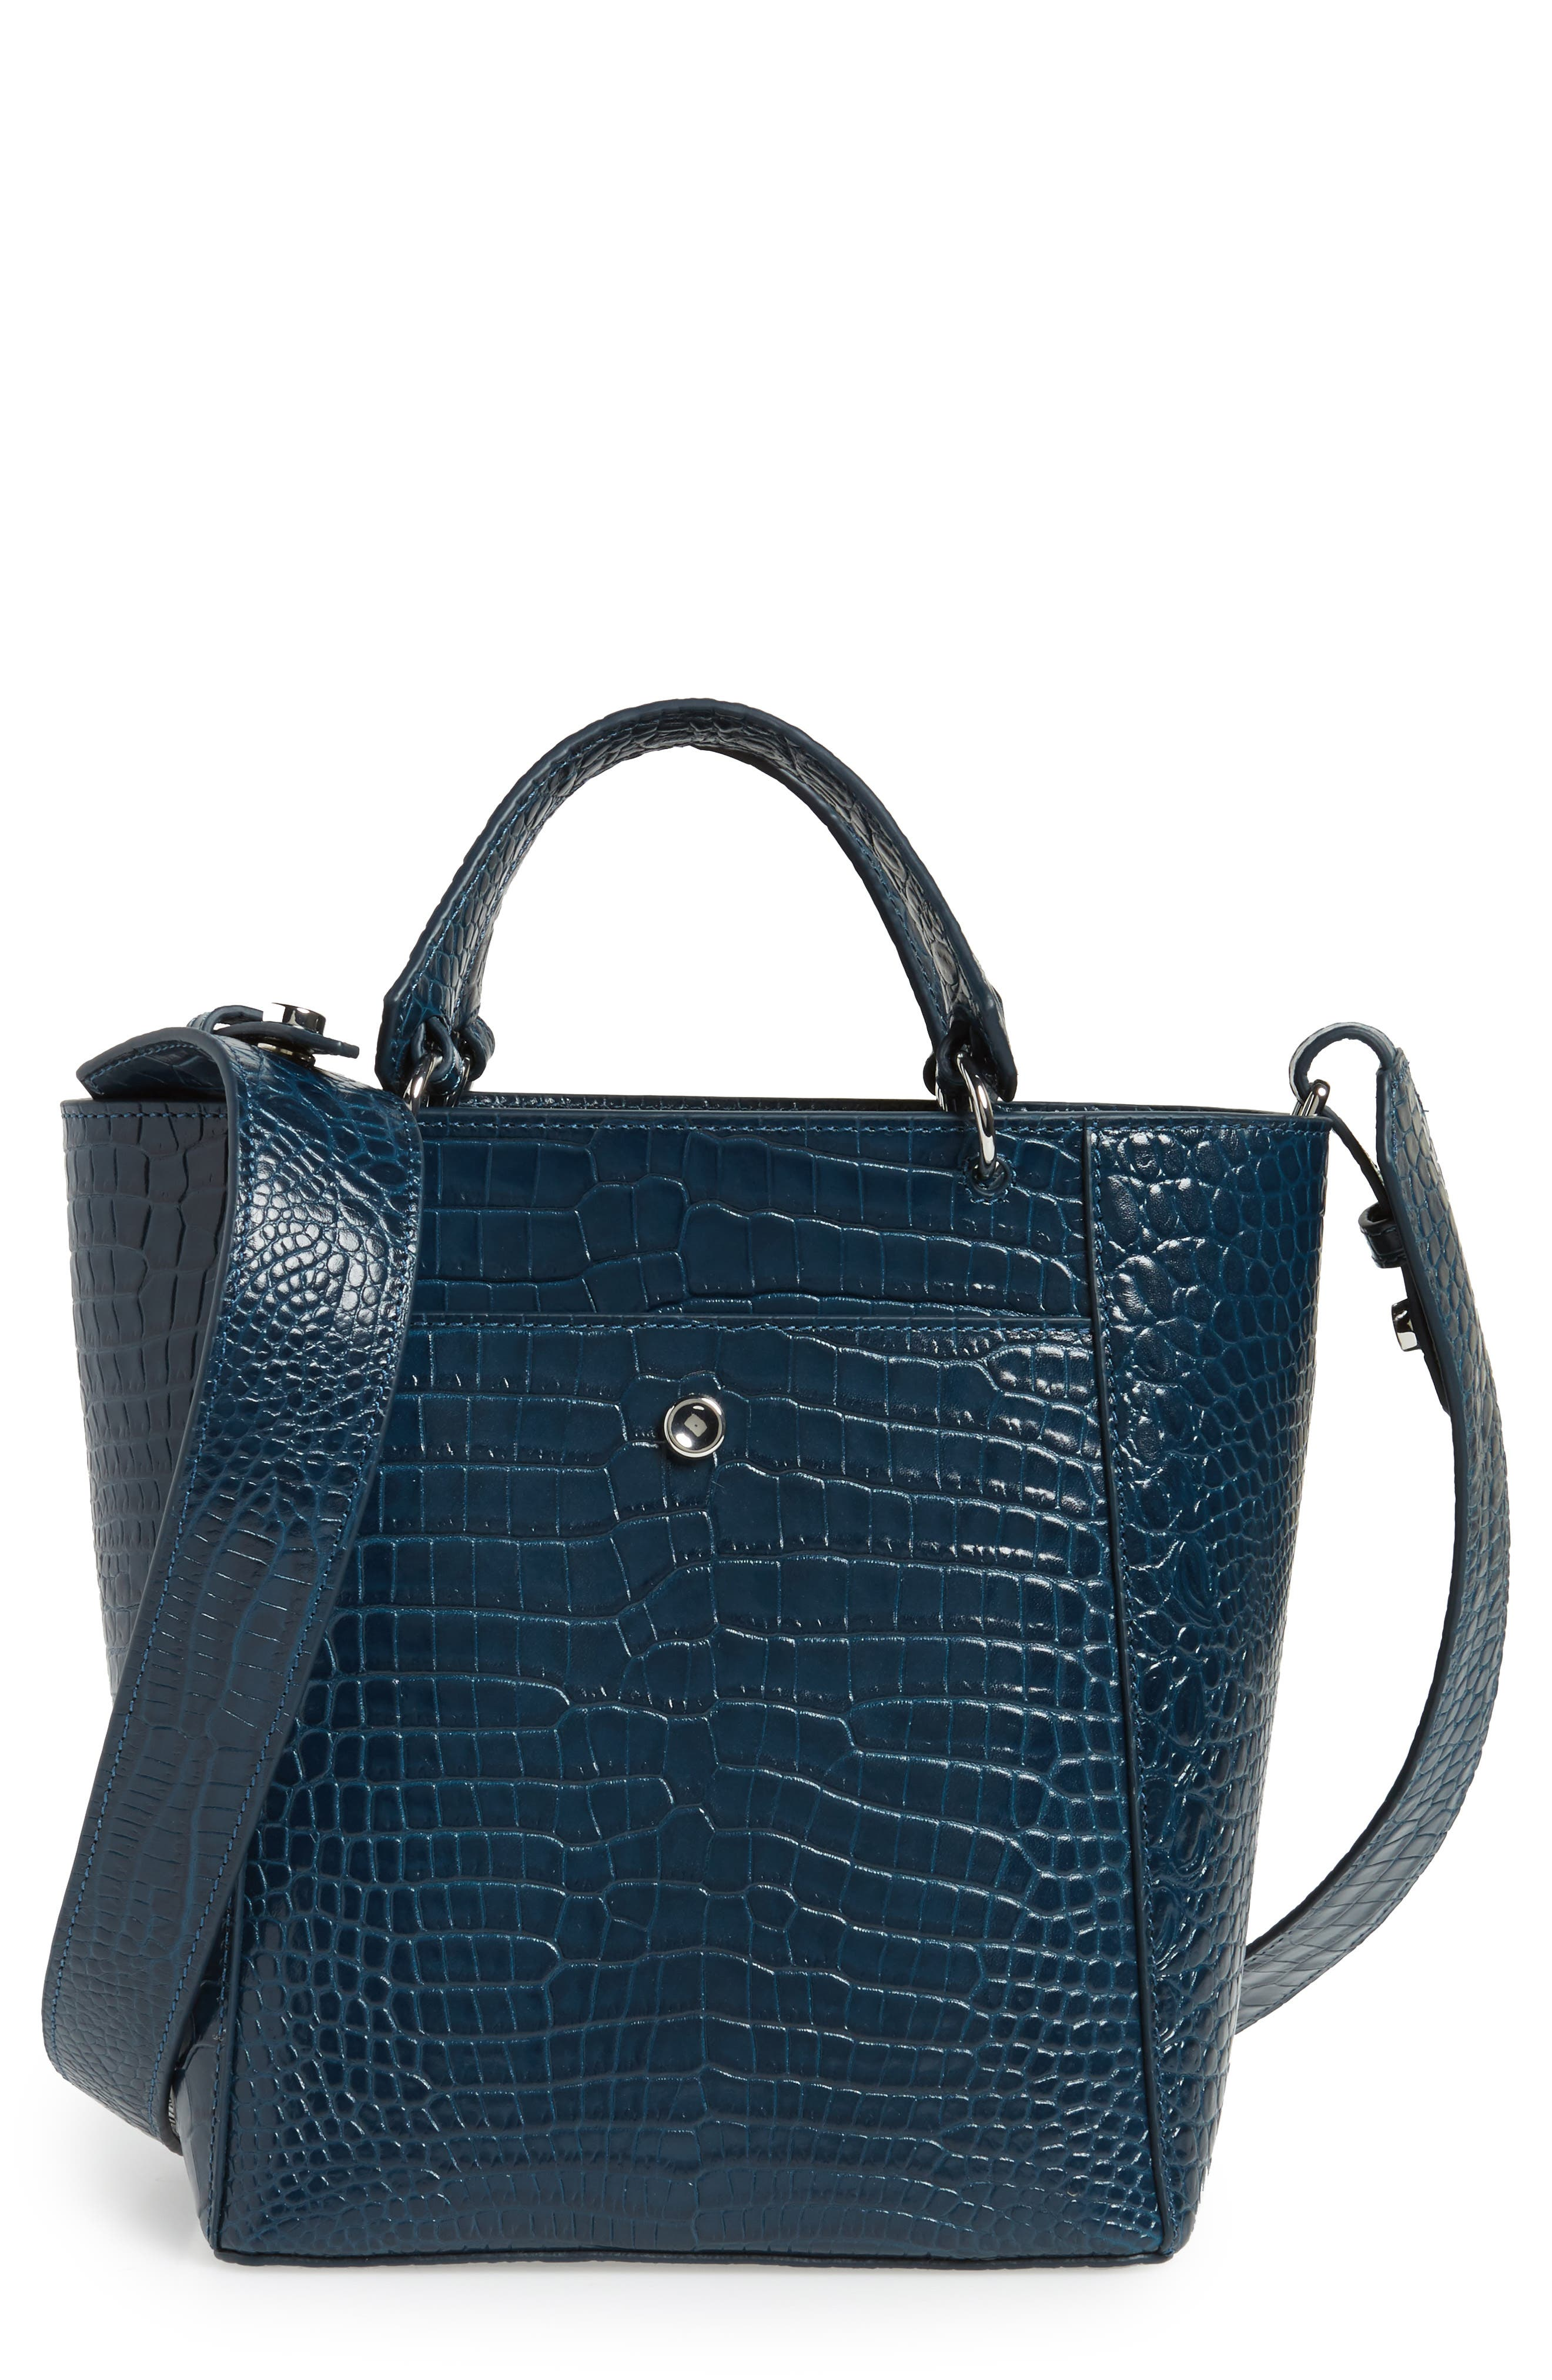 Alternate Image 1 Selected - Elizabeth and James Small Eloise Leather Tote